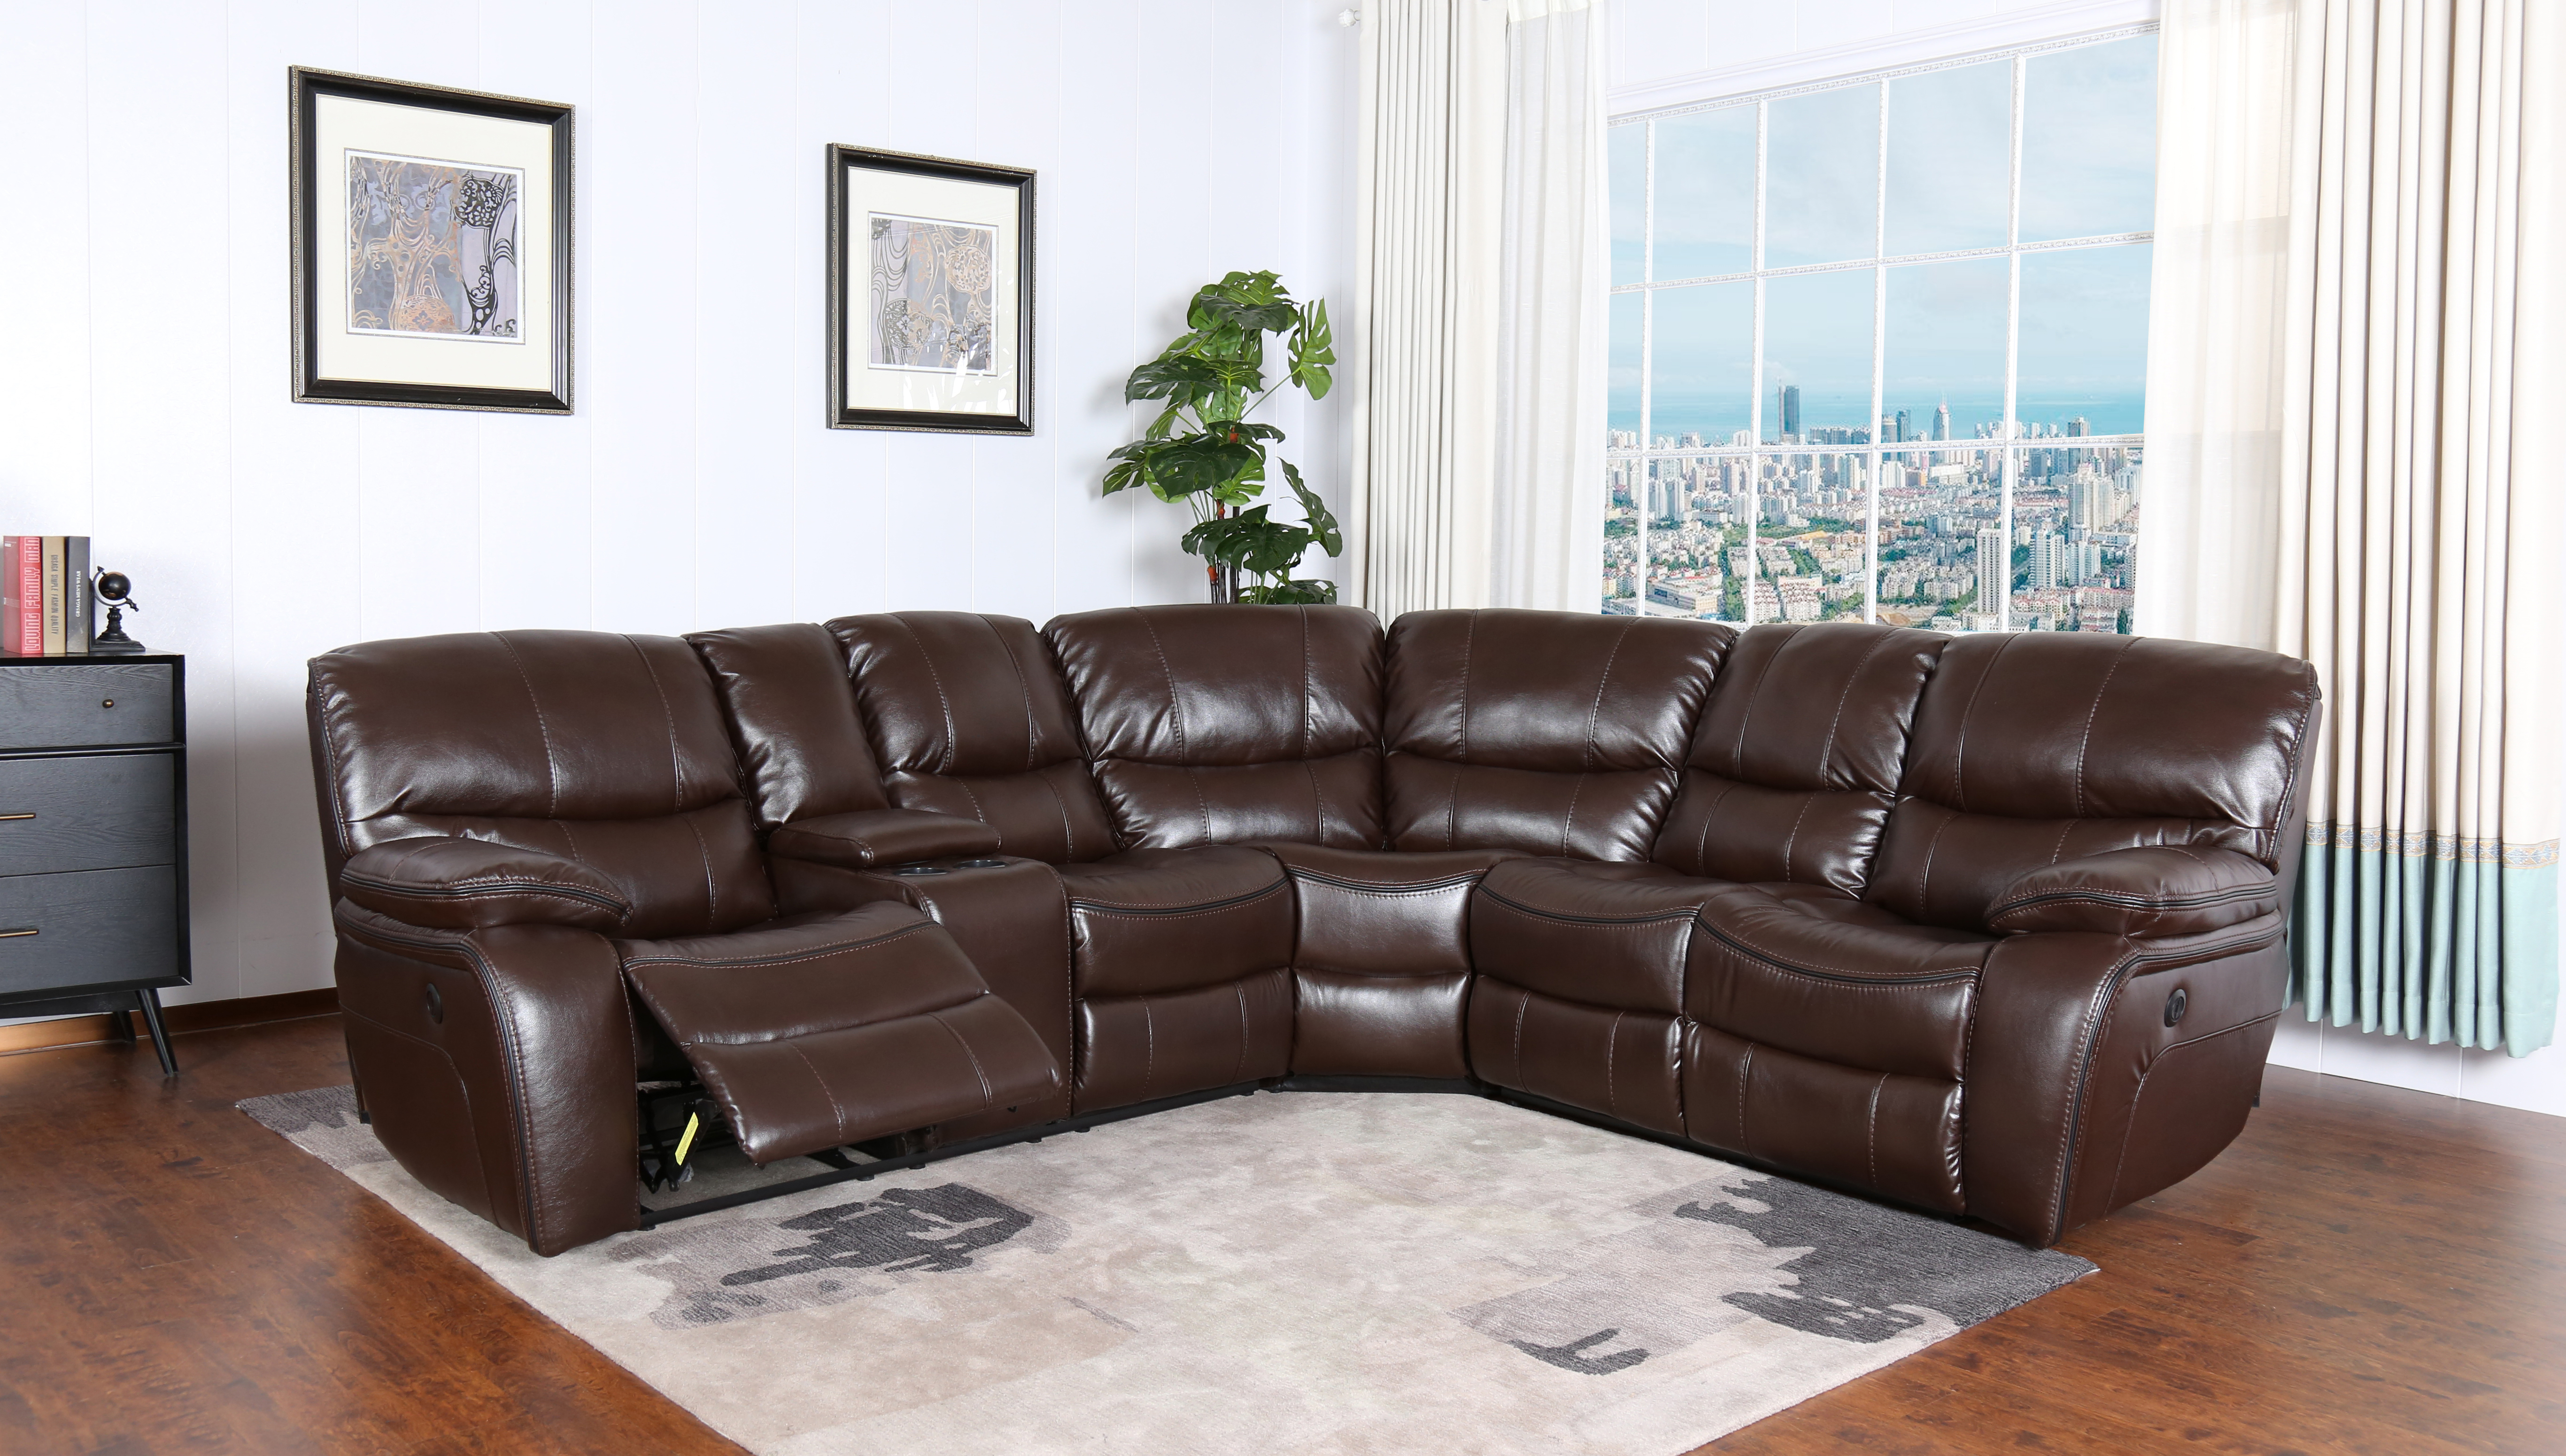 detailing dd788 0f023 MADRID POWER RECLINING SECTIONAL SOFA with CONSOLE